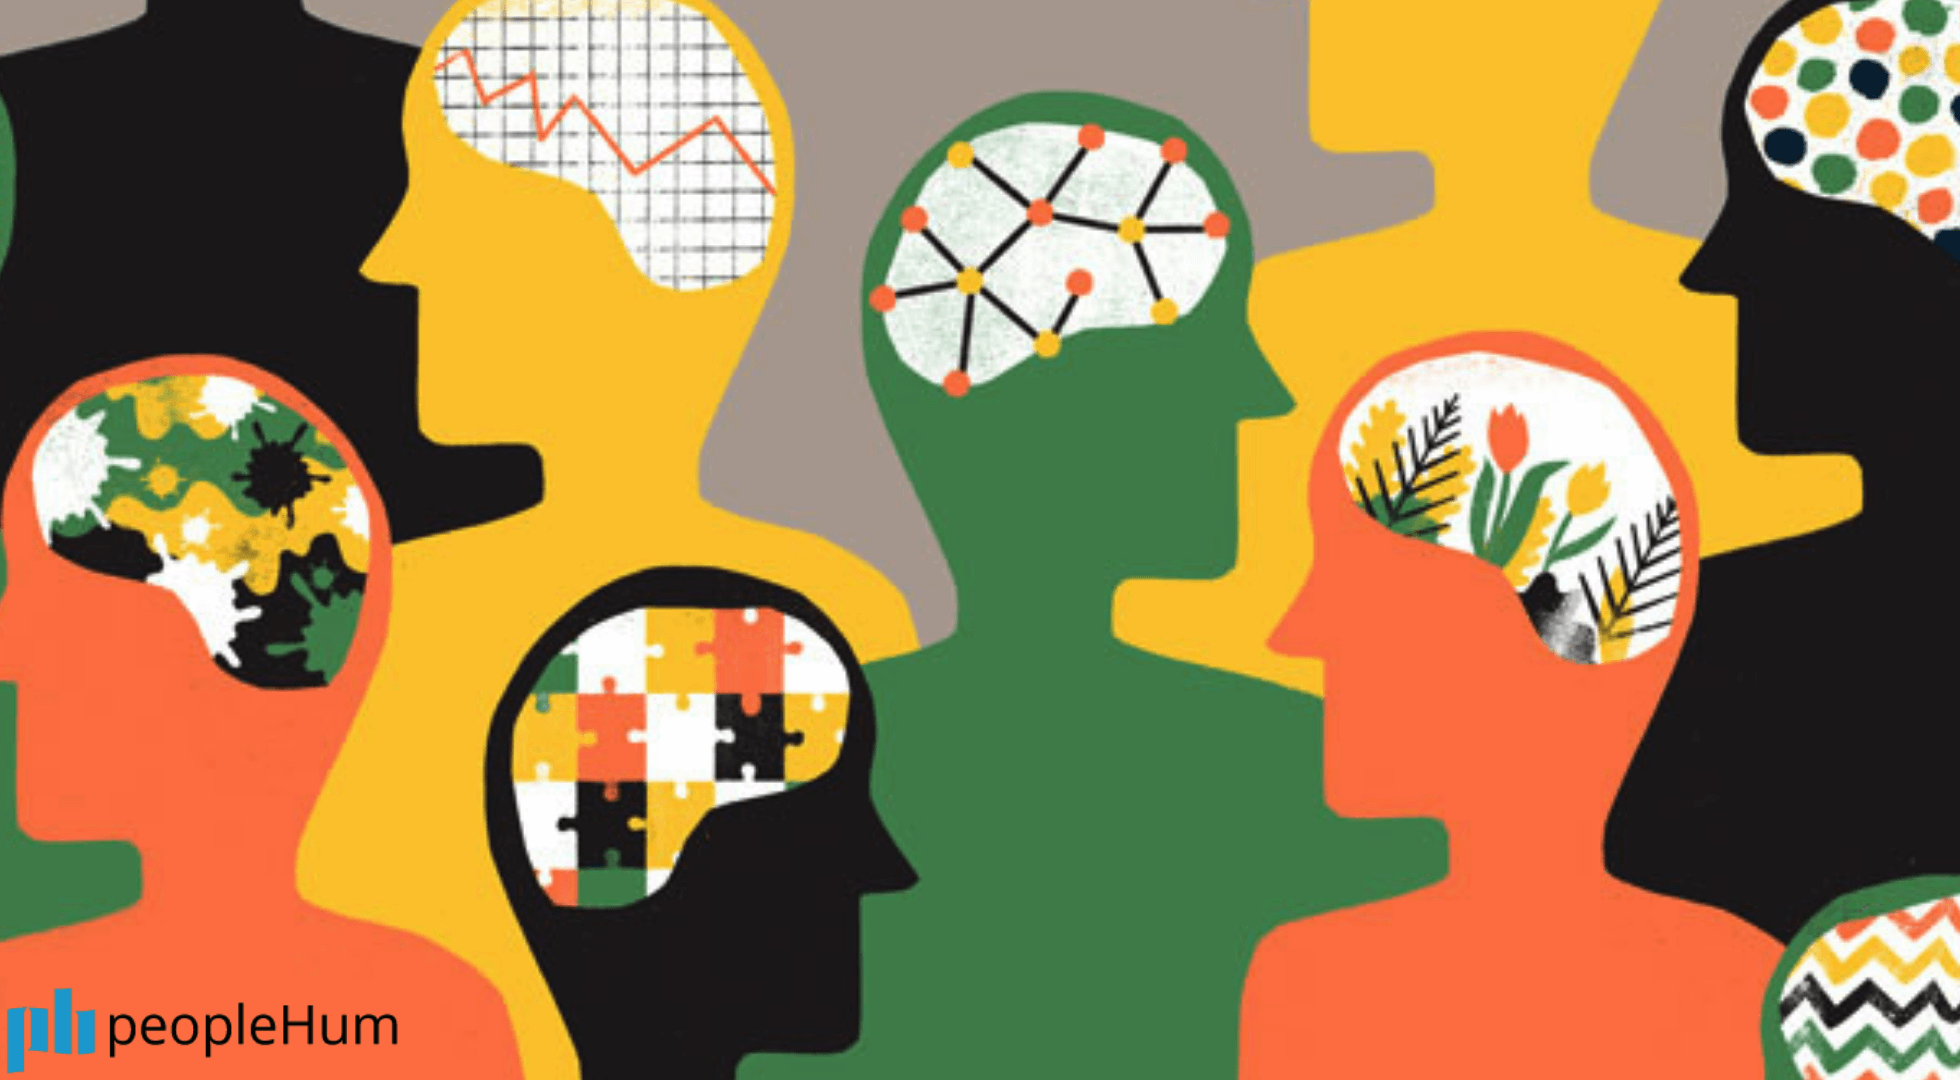 Thinking differently: neurodiversity can help companies thrive